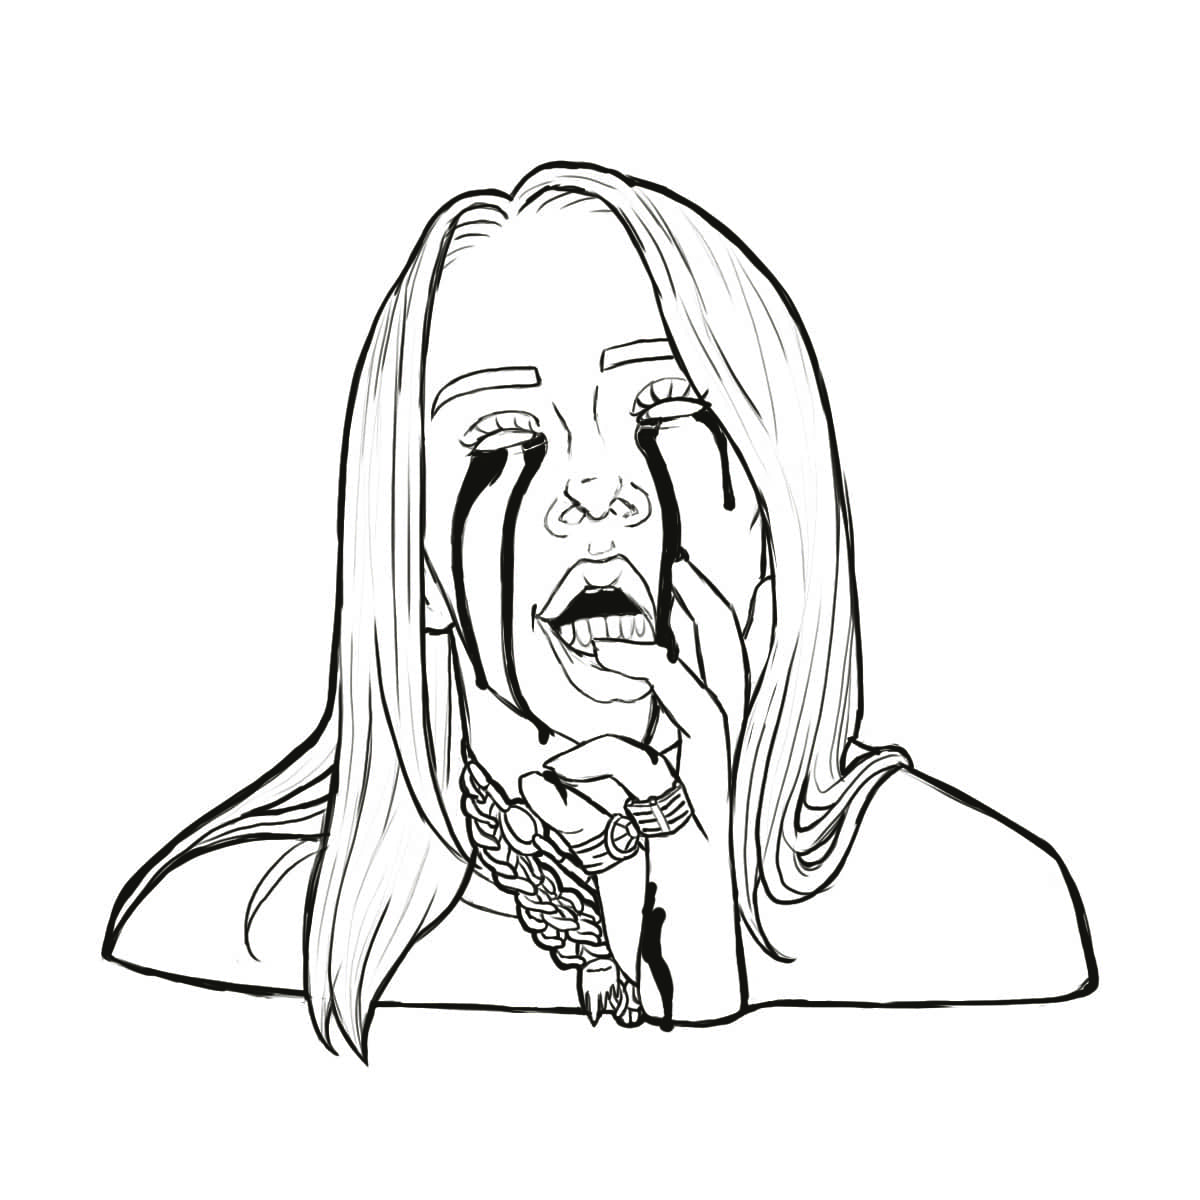 Free Billie Eilish Coloring Pages printable